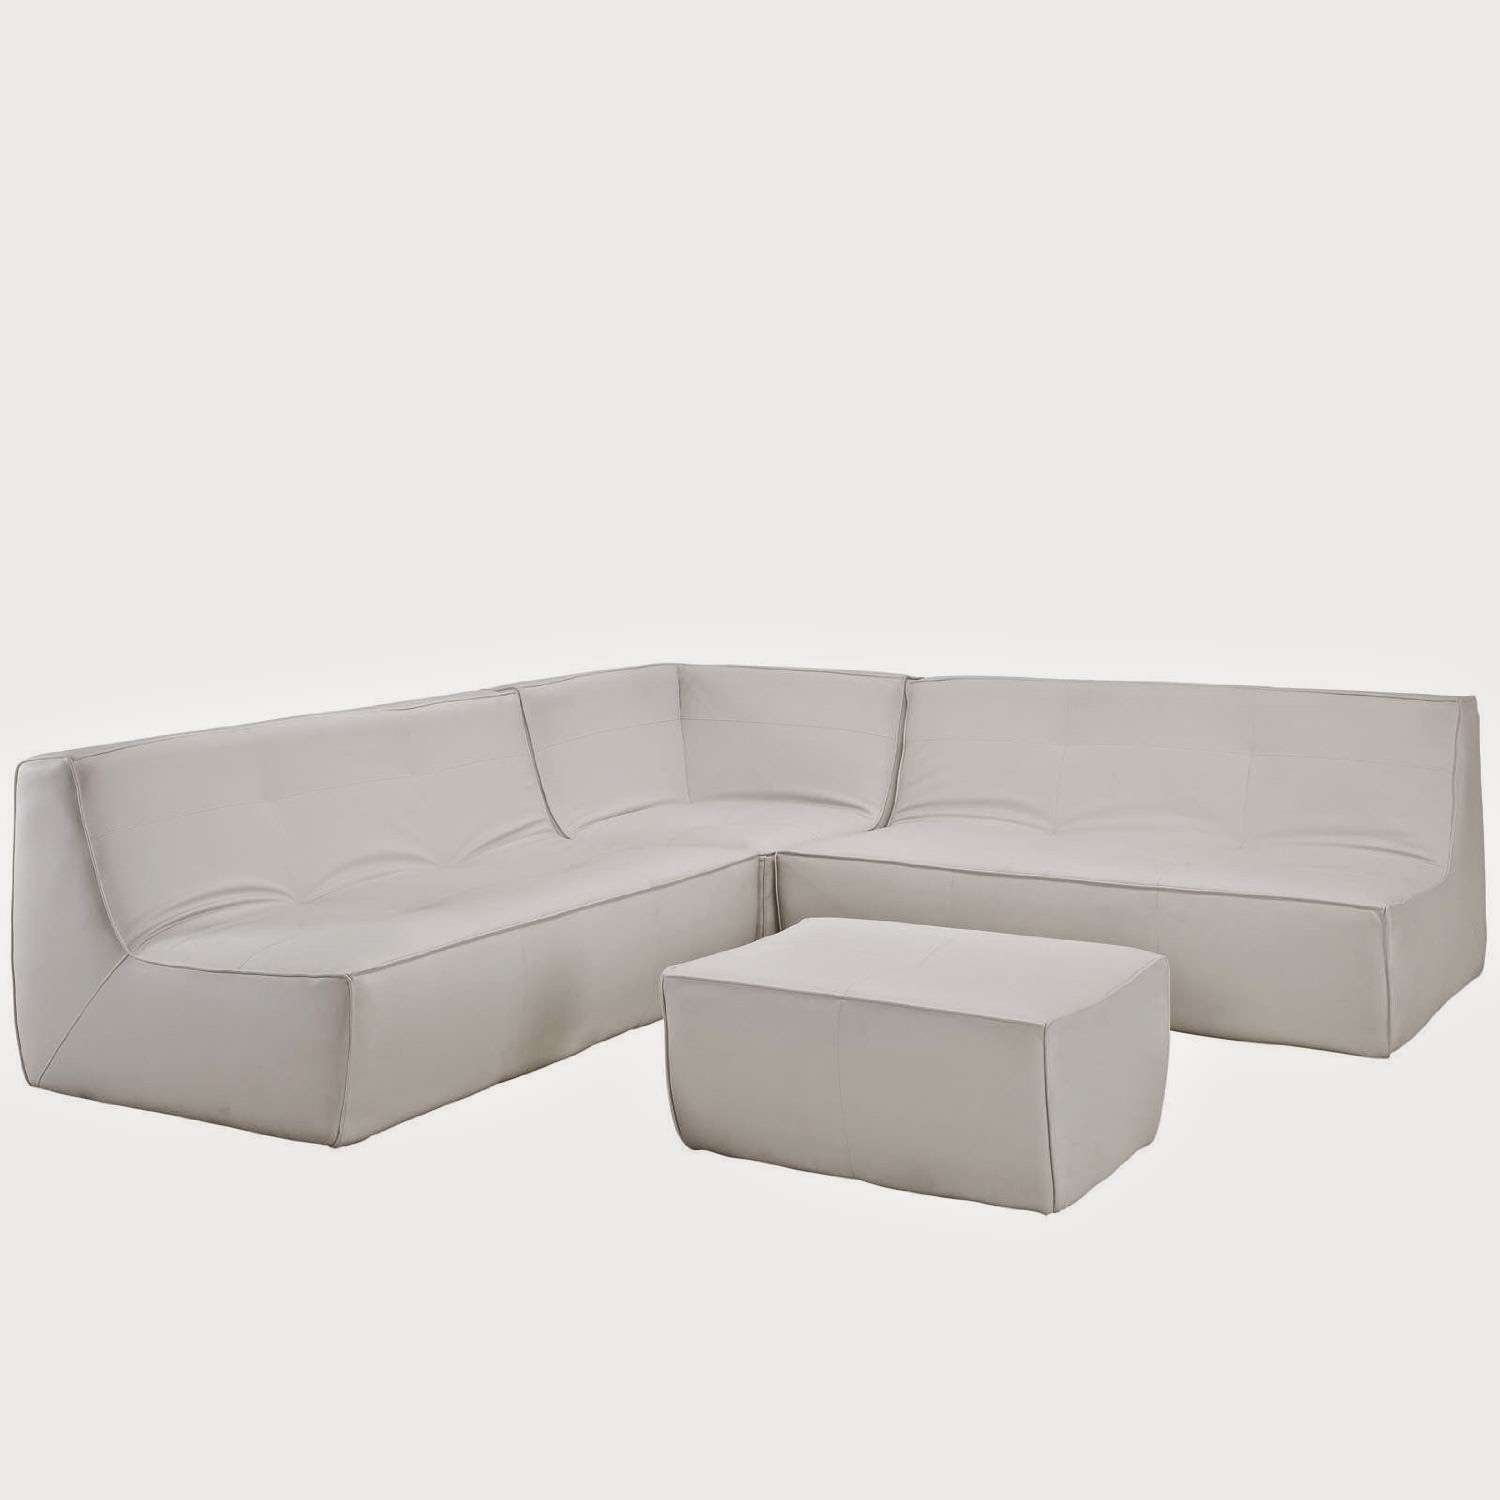 Curved sofa couch for sale curved contemporary sofa for Contemporary sectional sofas